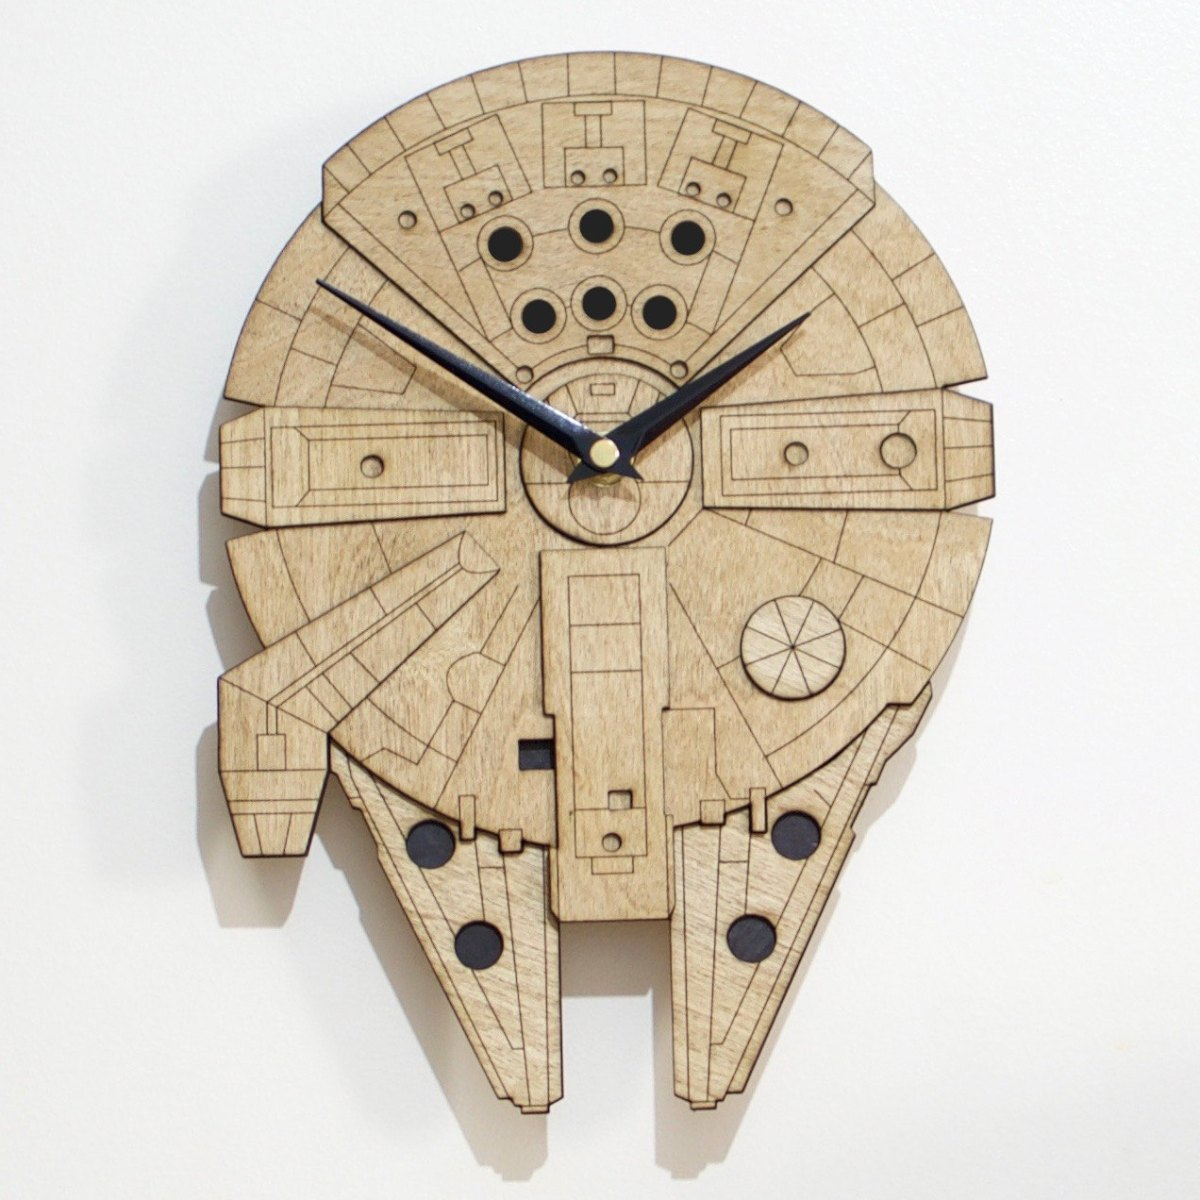 Laser Cut Wall Mounted Millennium Falcon Clock Boing Boing